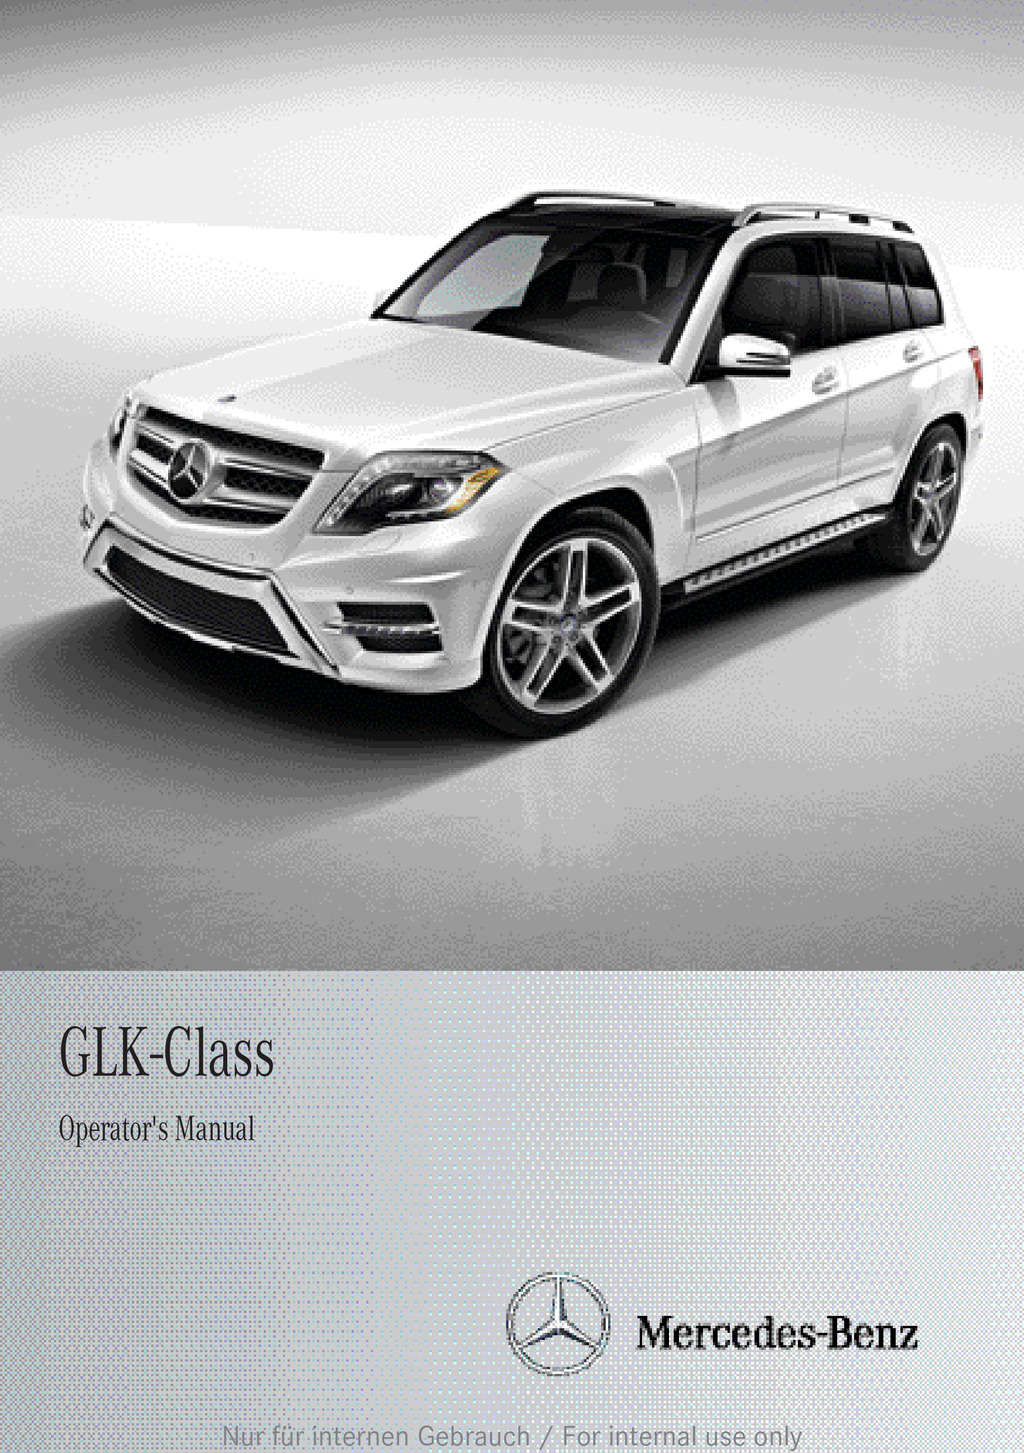 2014 Mercedes-Benz GLK Class owners manual